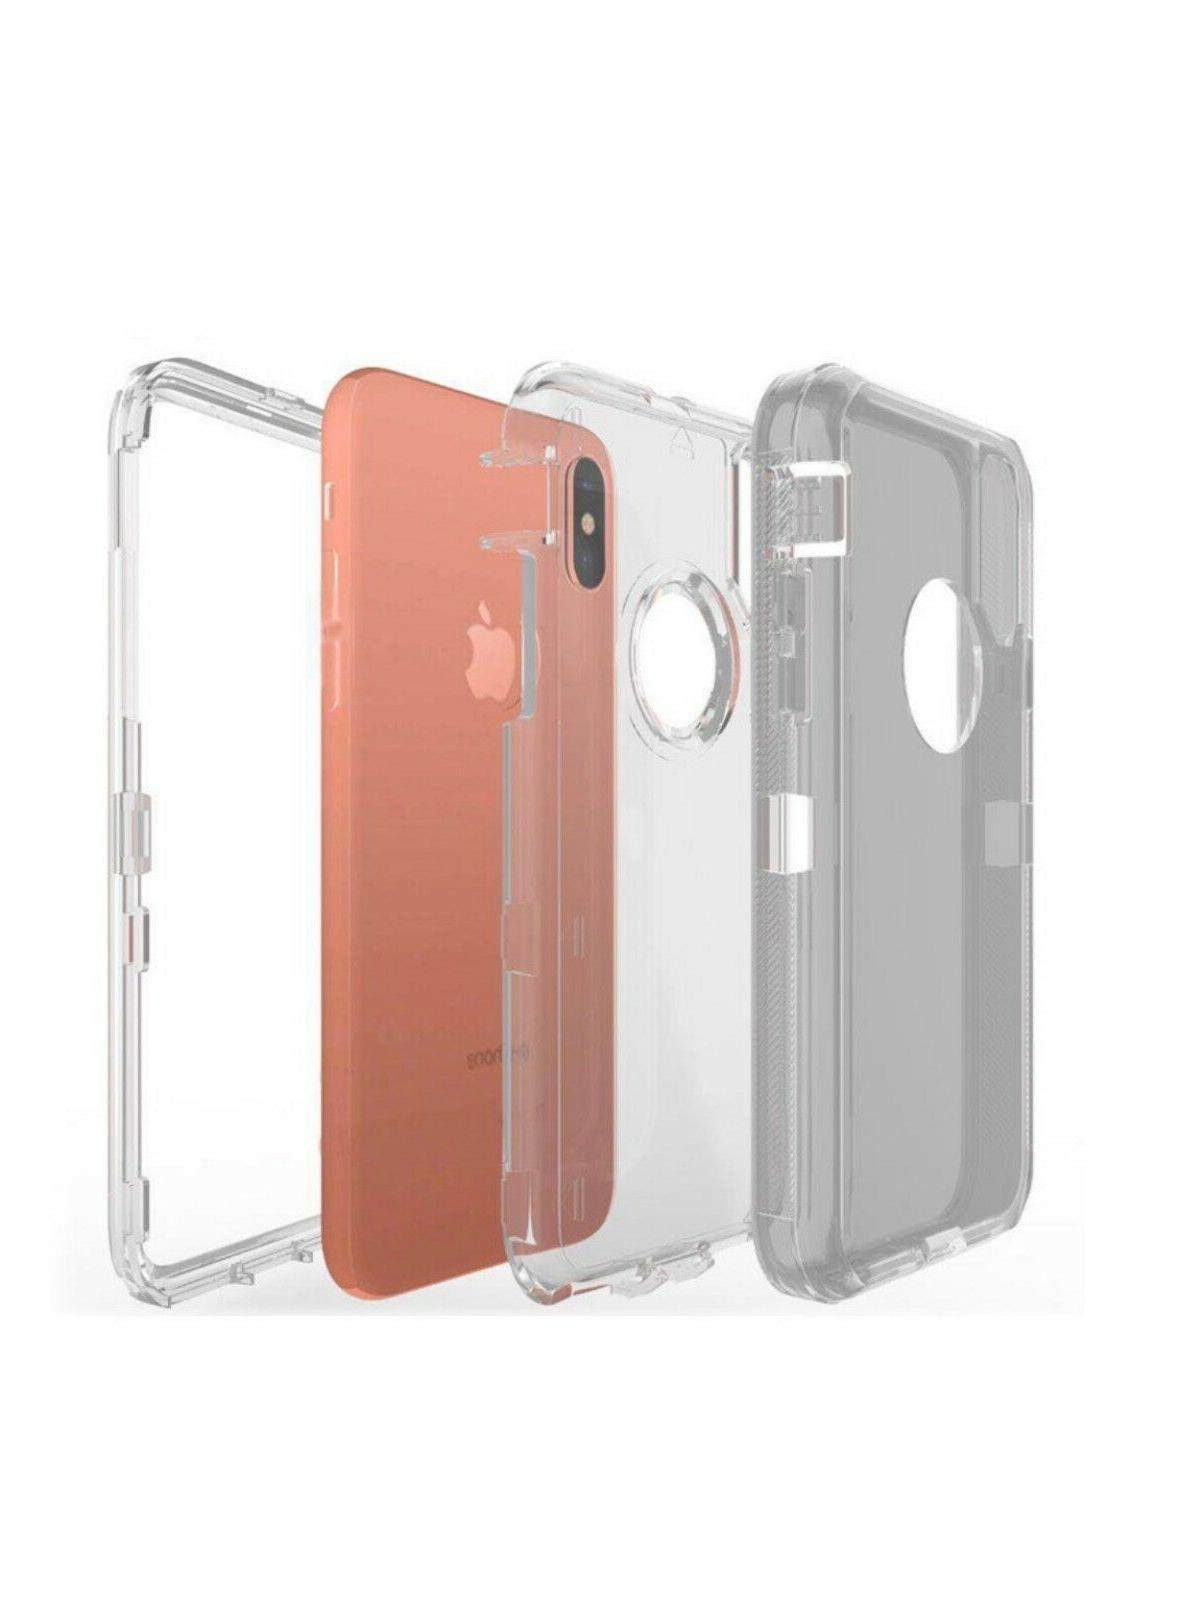 Clear iPhone 6 6s 8 Plus fits Otterbox